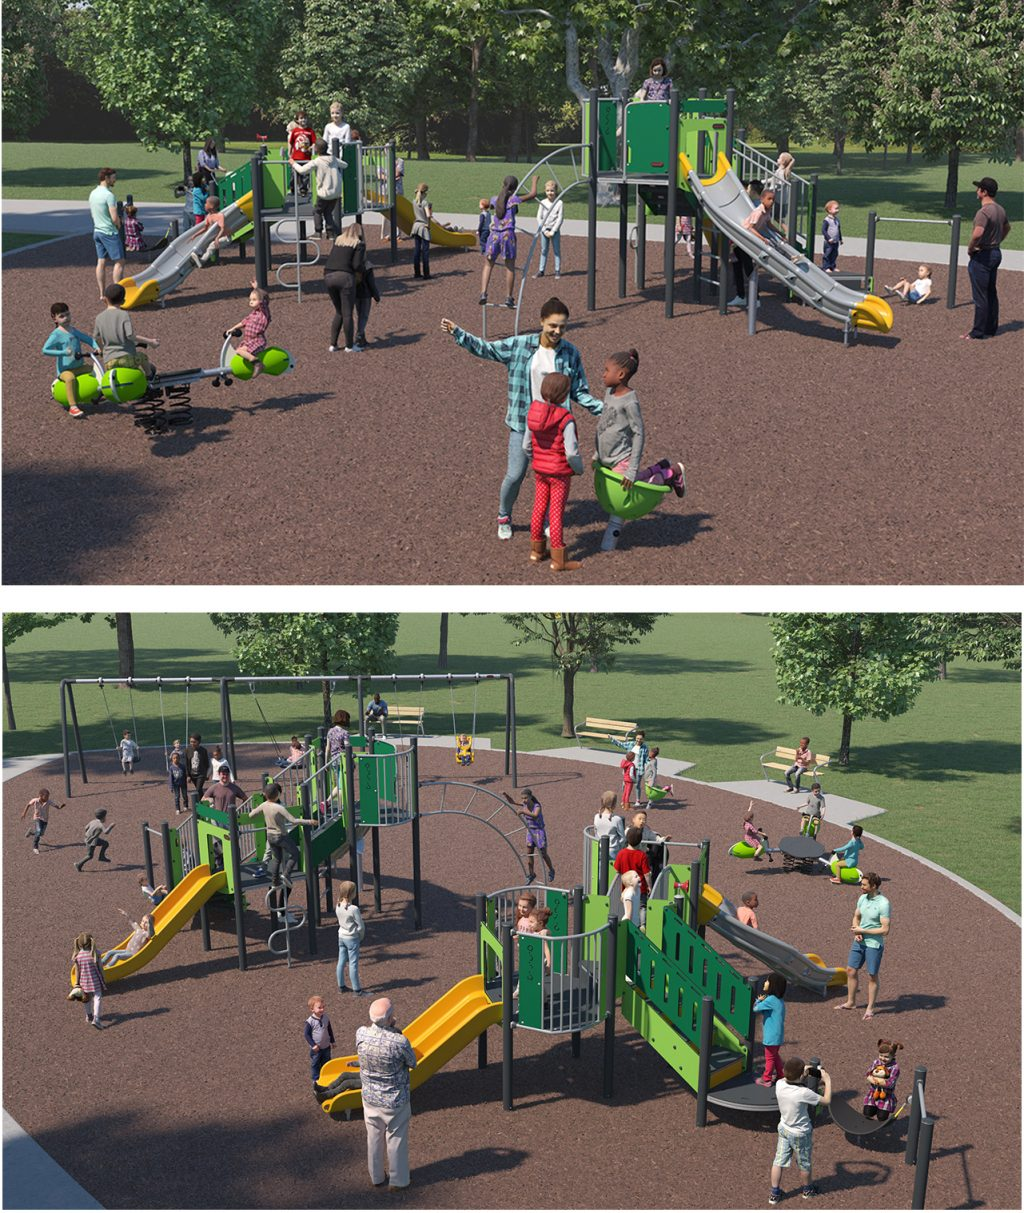 Playground Equipment B for Layout Option Two (Circular Layout) as described below.